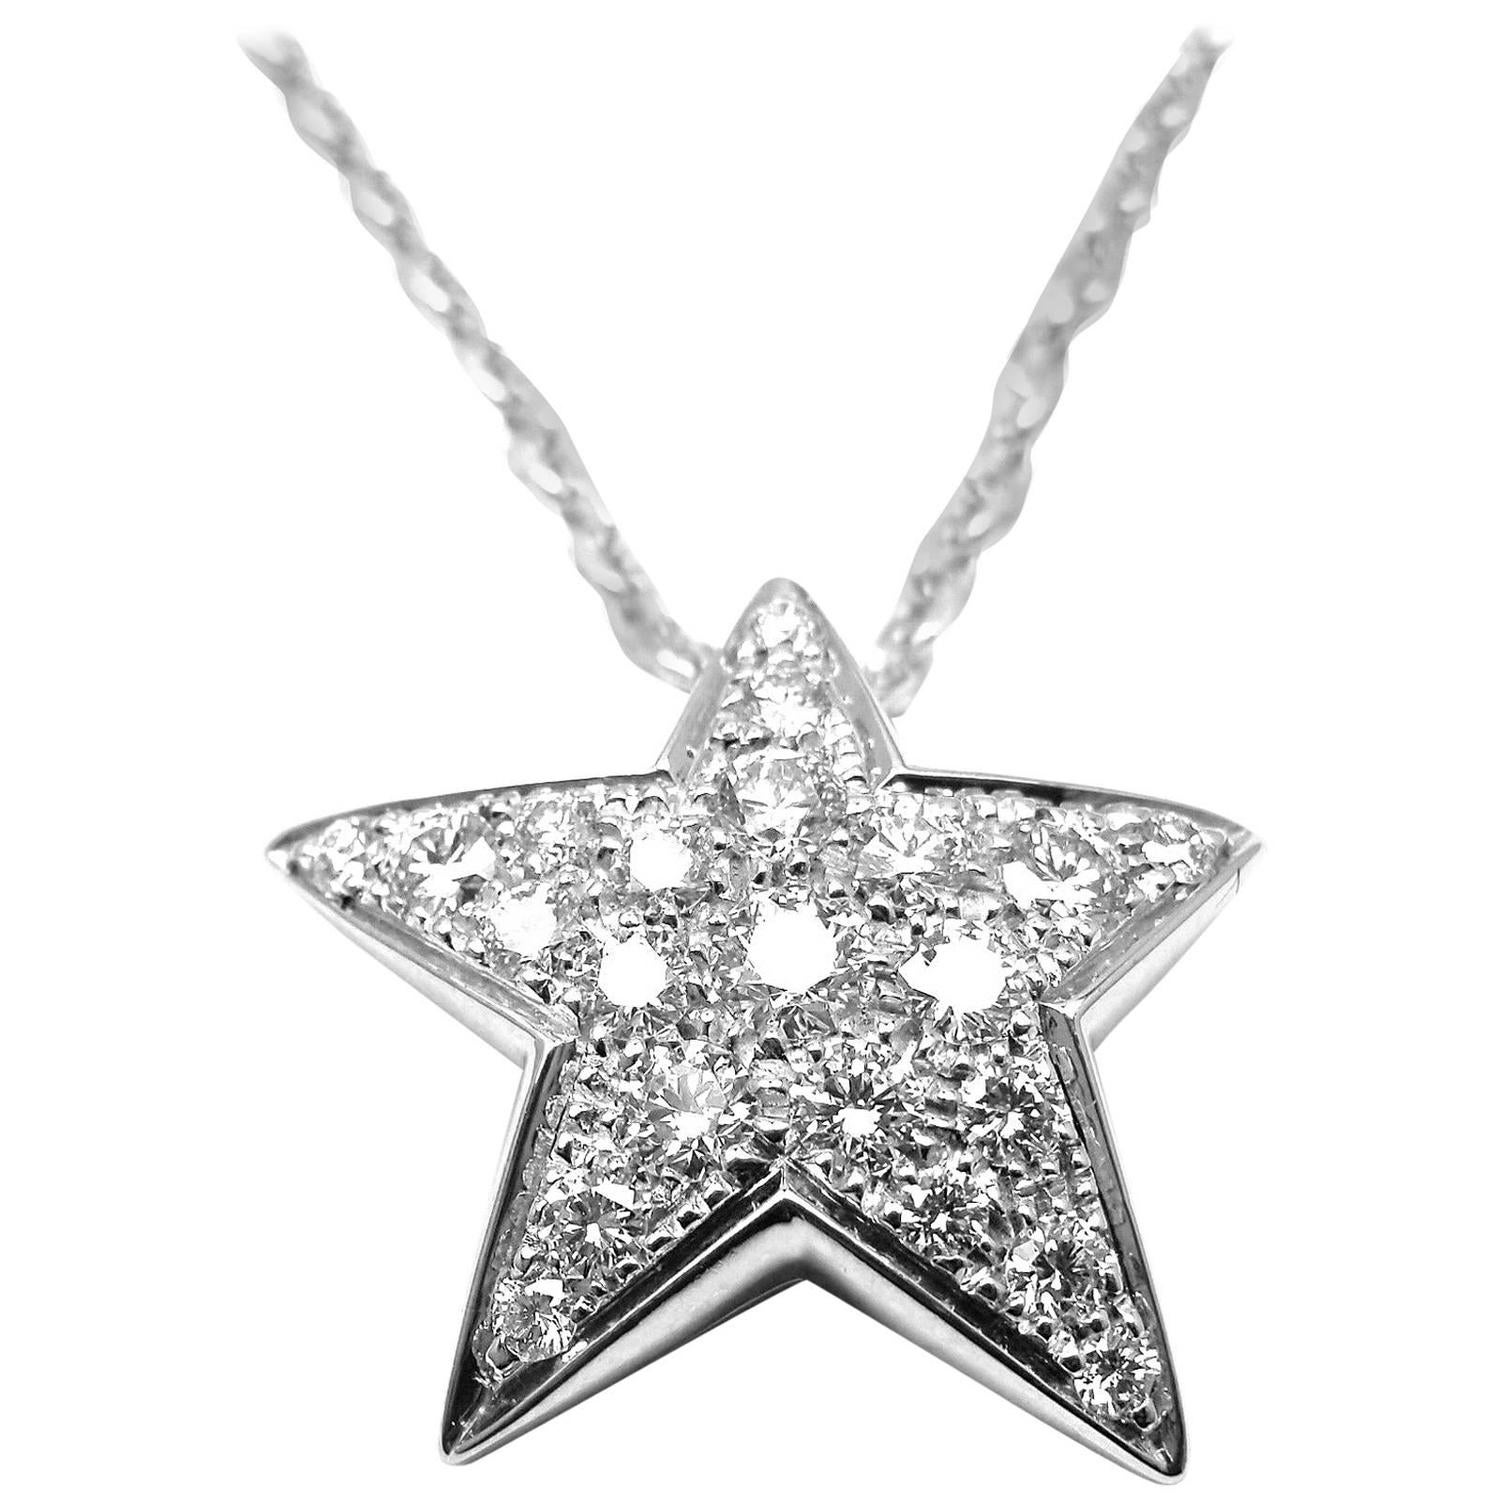 Chanel ete Diamond Gold Star Pendant Necklace at 1stdibs